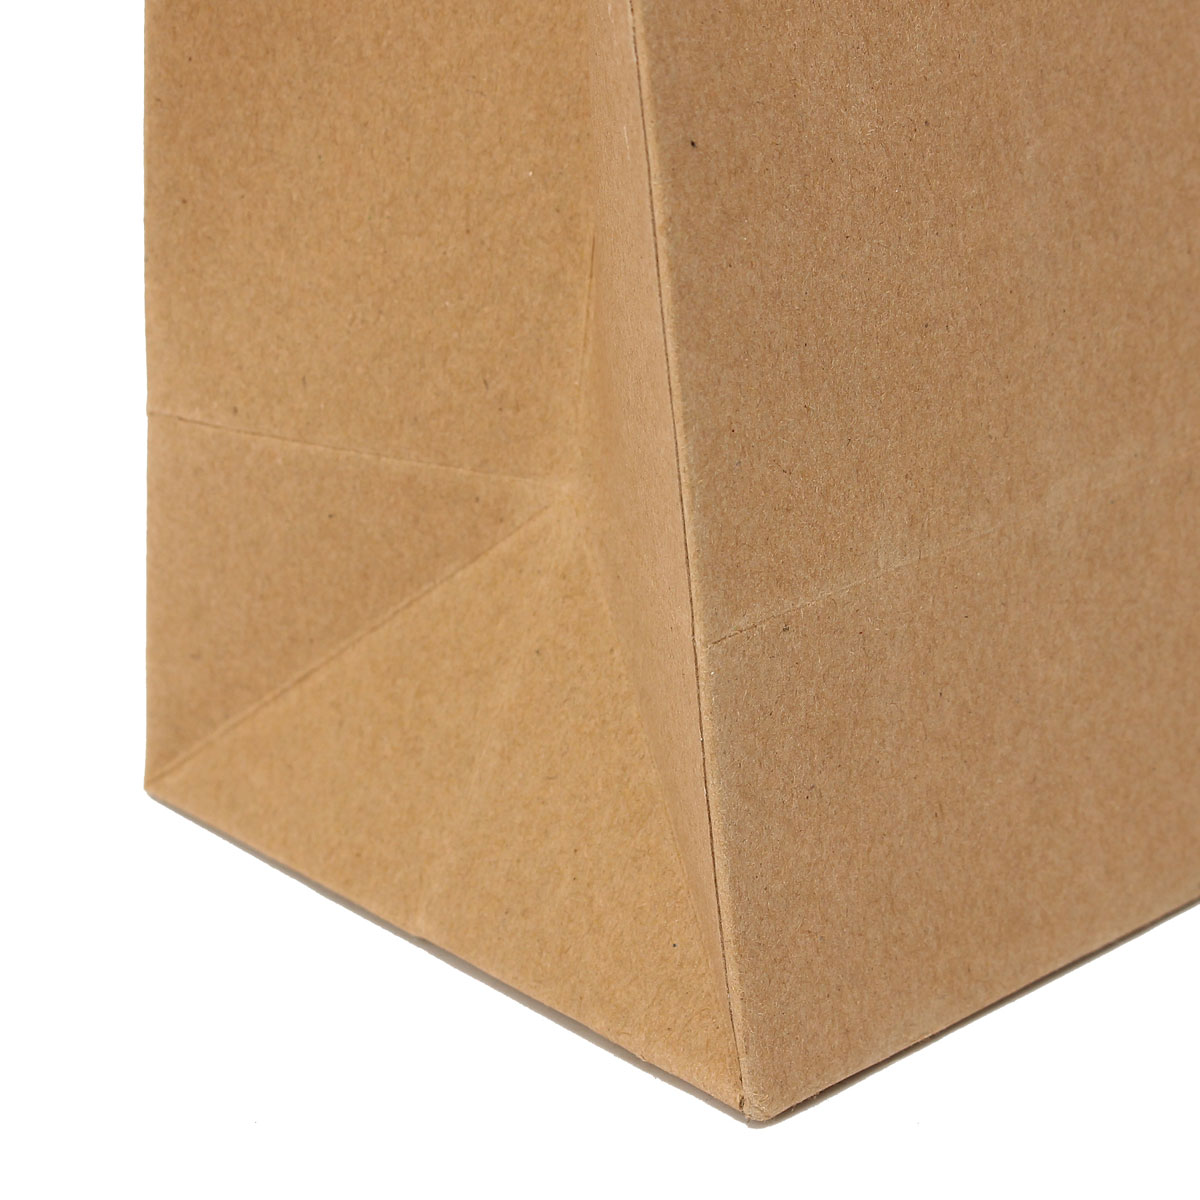 14 Size Recyclable Kraft Paper Bags With Handle Gift Shopping Present Party Favour Gifts